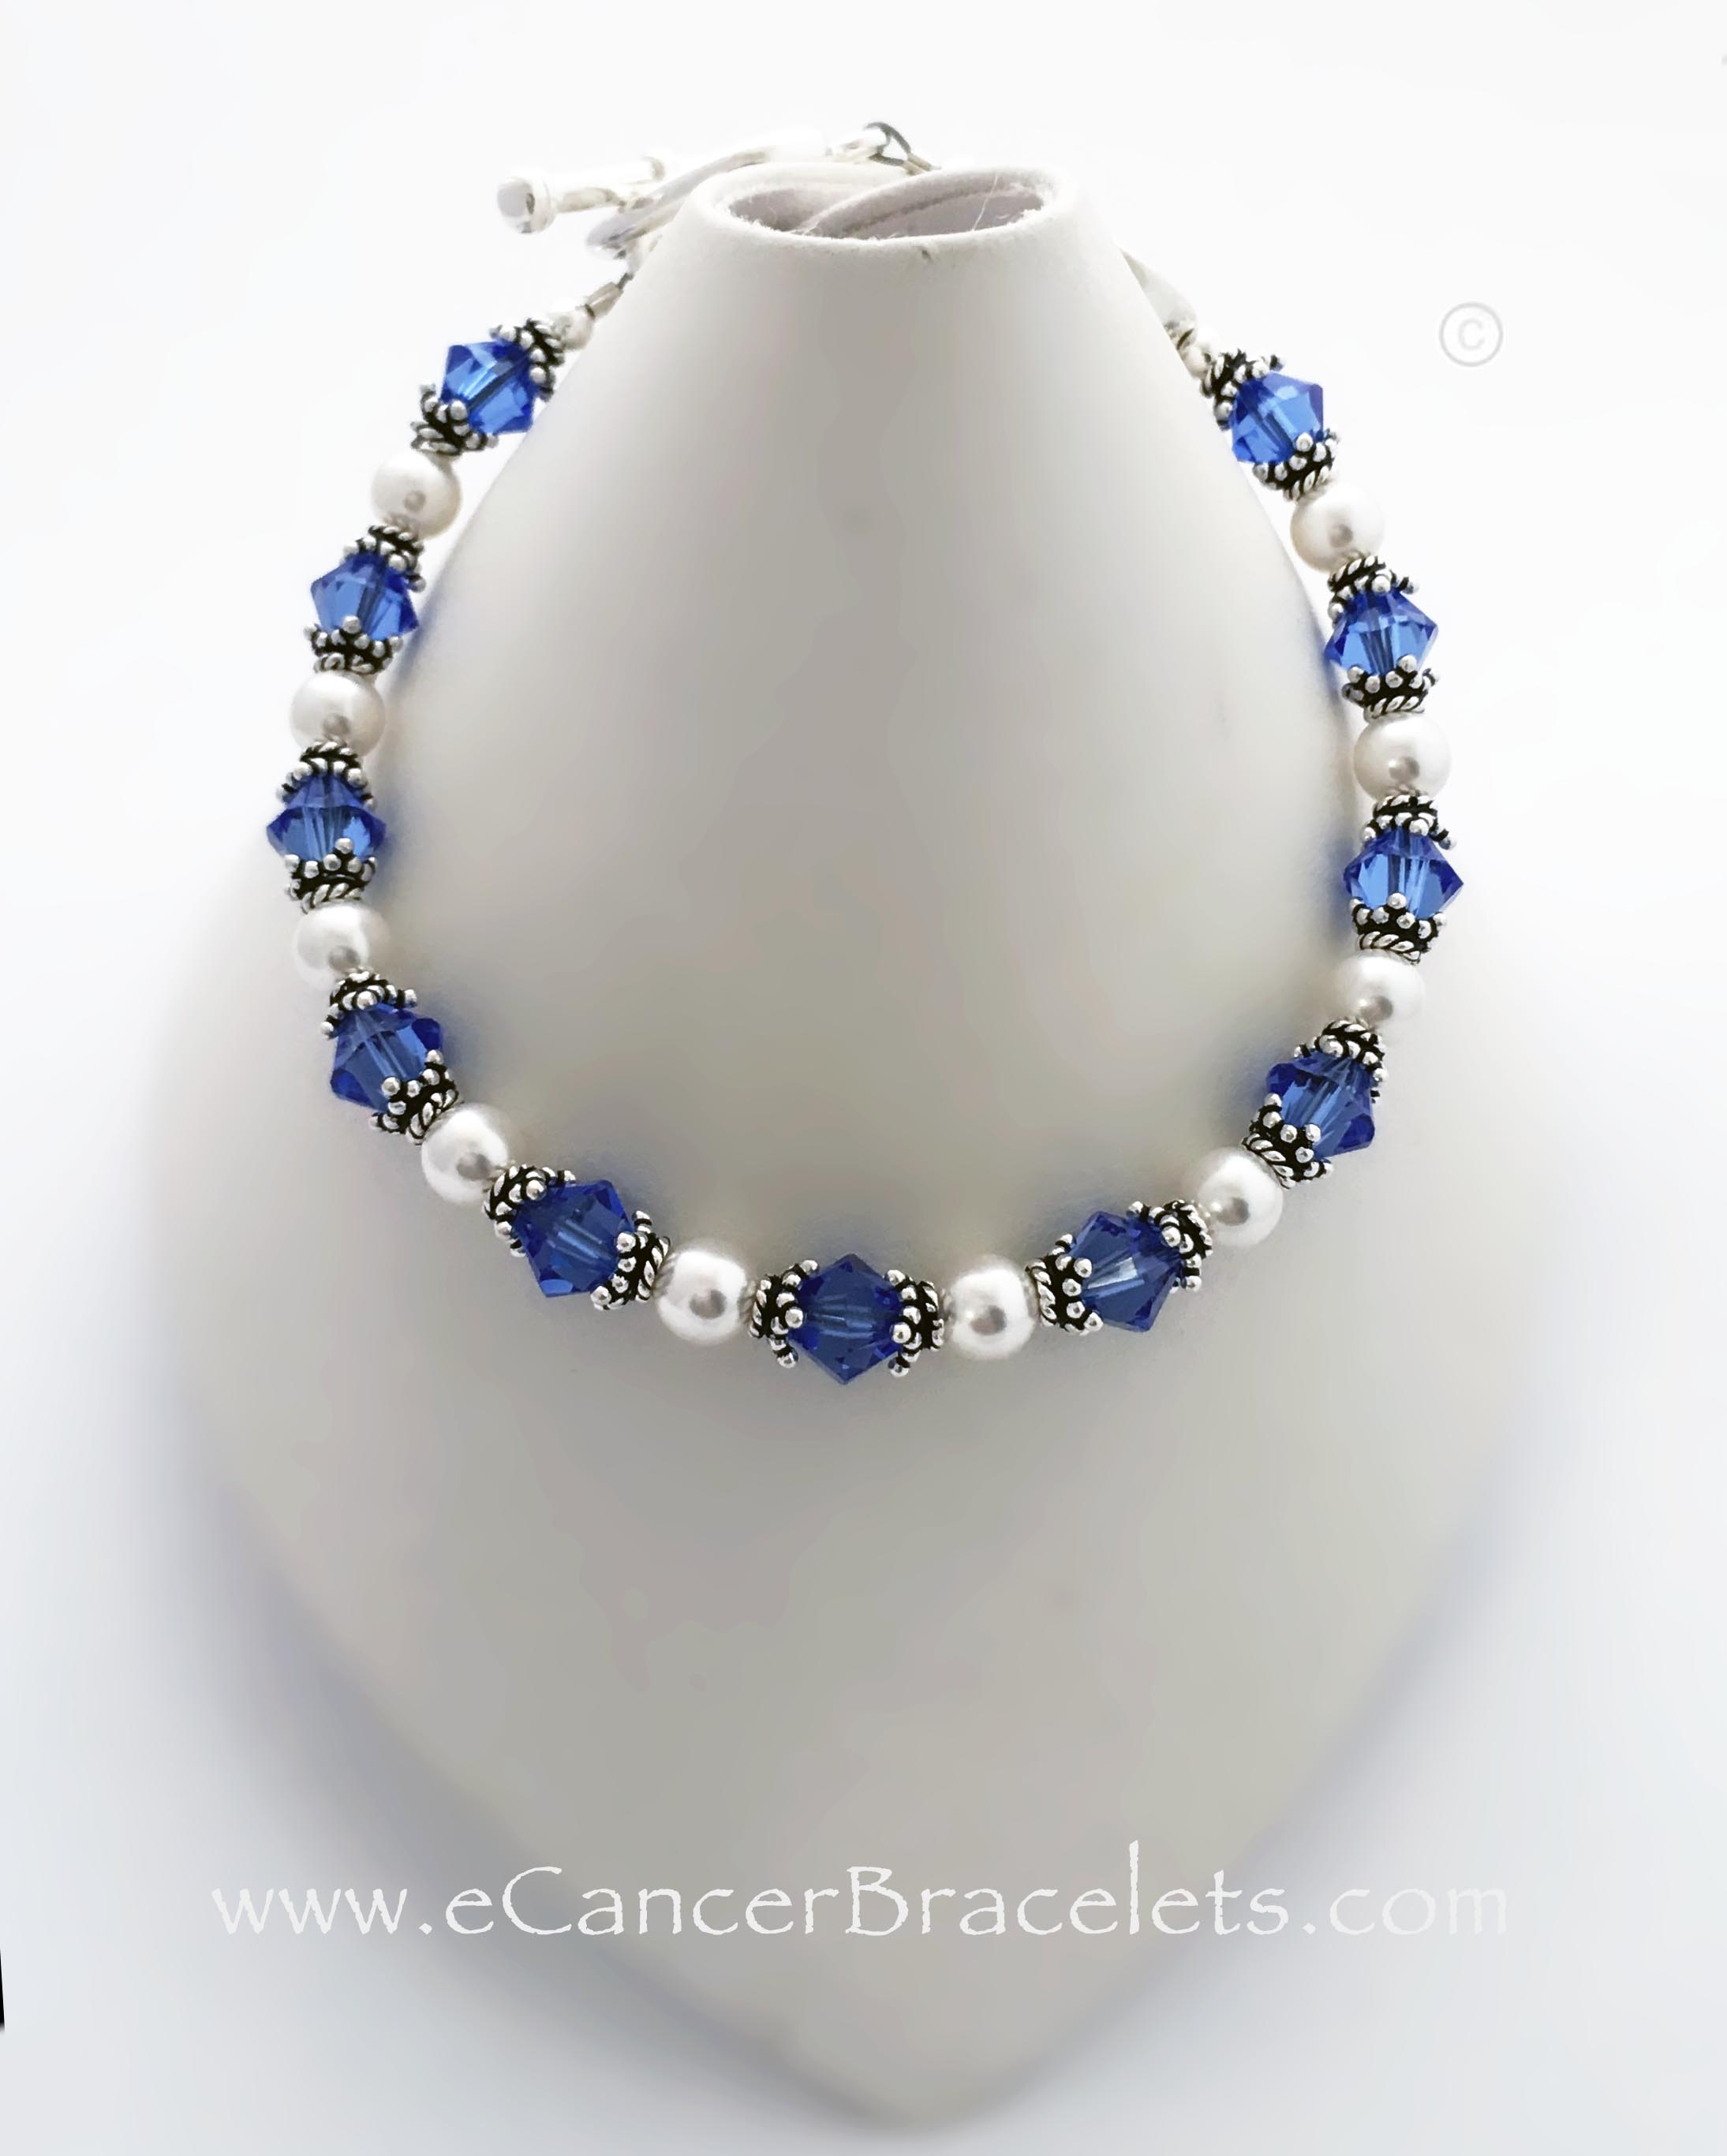 Blue Ribbon Bracelet with Courage Bead This bracelet is shown with blue crystals for colon cancer. It comes with a blue colon cancer charm and a ribbon charm. They added a COURAGE bead and upgaded to the Heart toggle clasp.